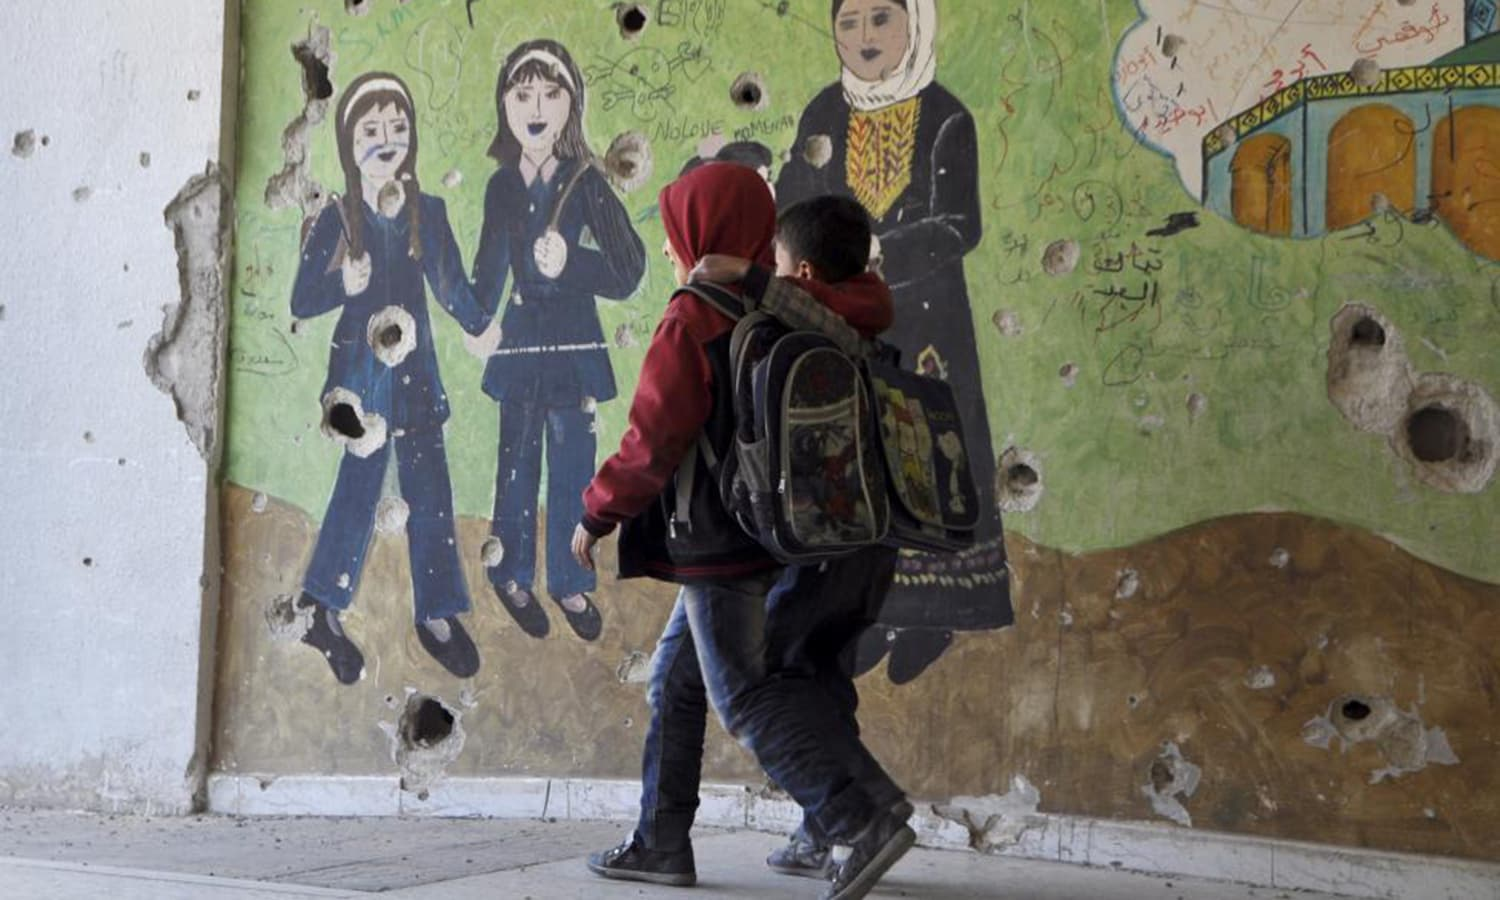 """Children walk beside a painted wall inside Jarmaq school in Yarmouk camp, April 14, 2015. The text on the wall reads in Arabic """"It's my right to learn."""" — Reuters"""